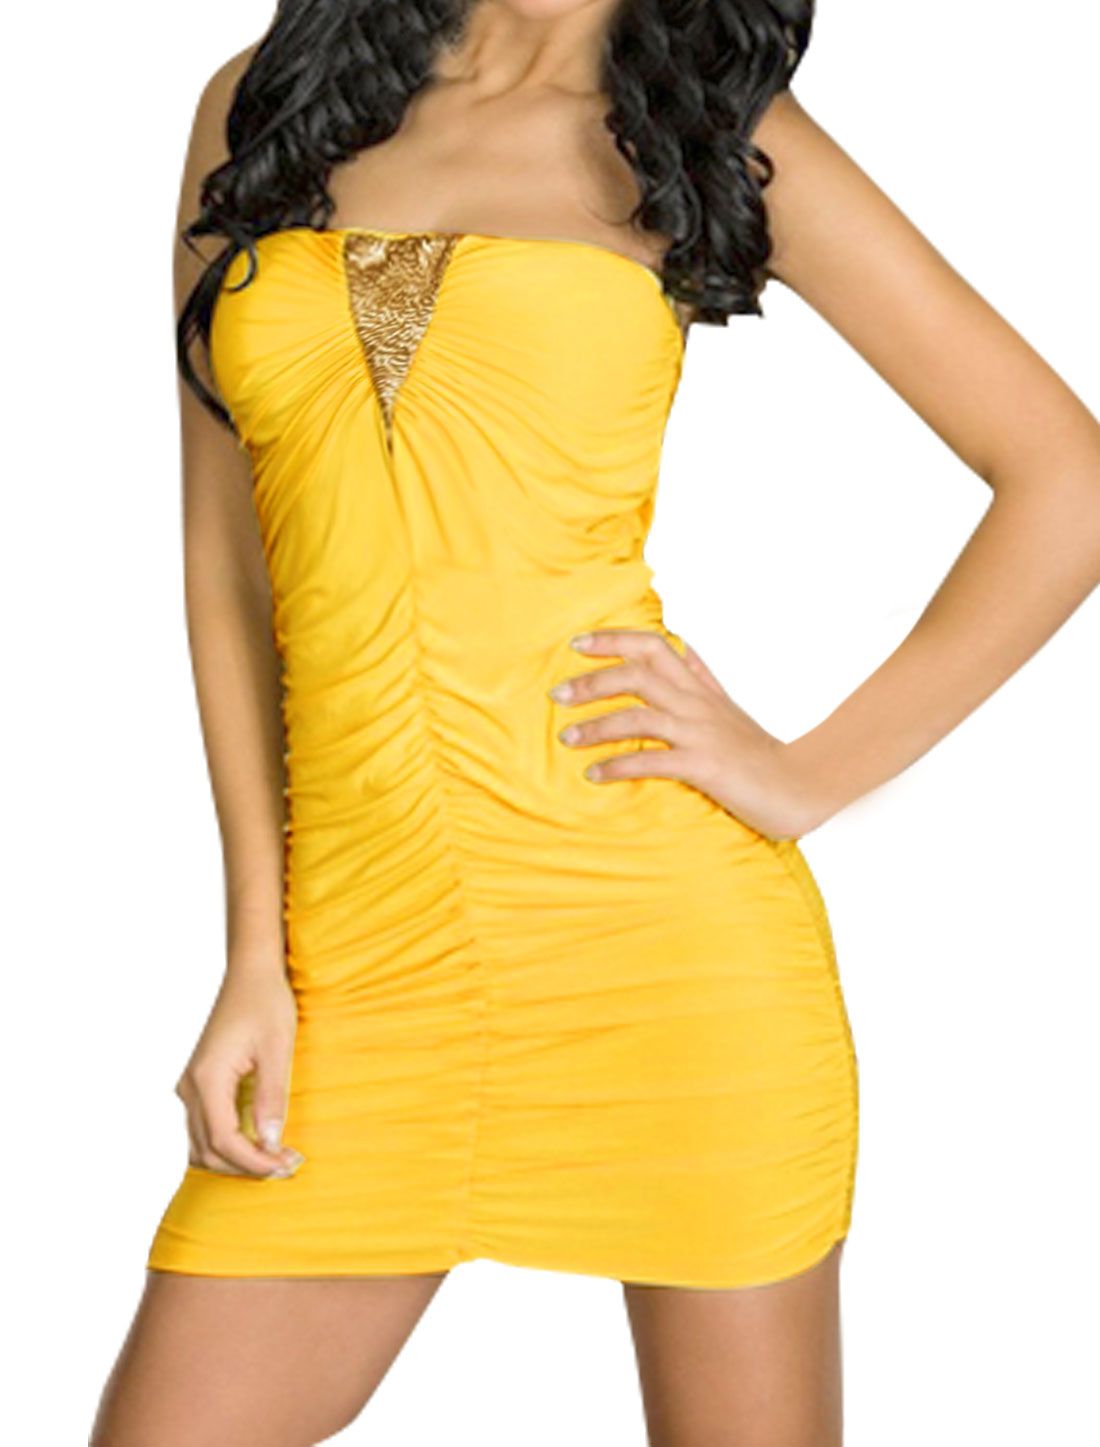 Women Sequins Decor Ruched Mini Tube Dress w T-Back Yellow XS